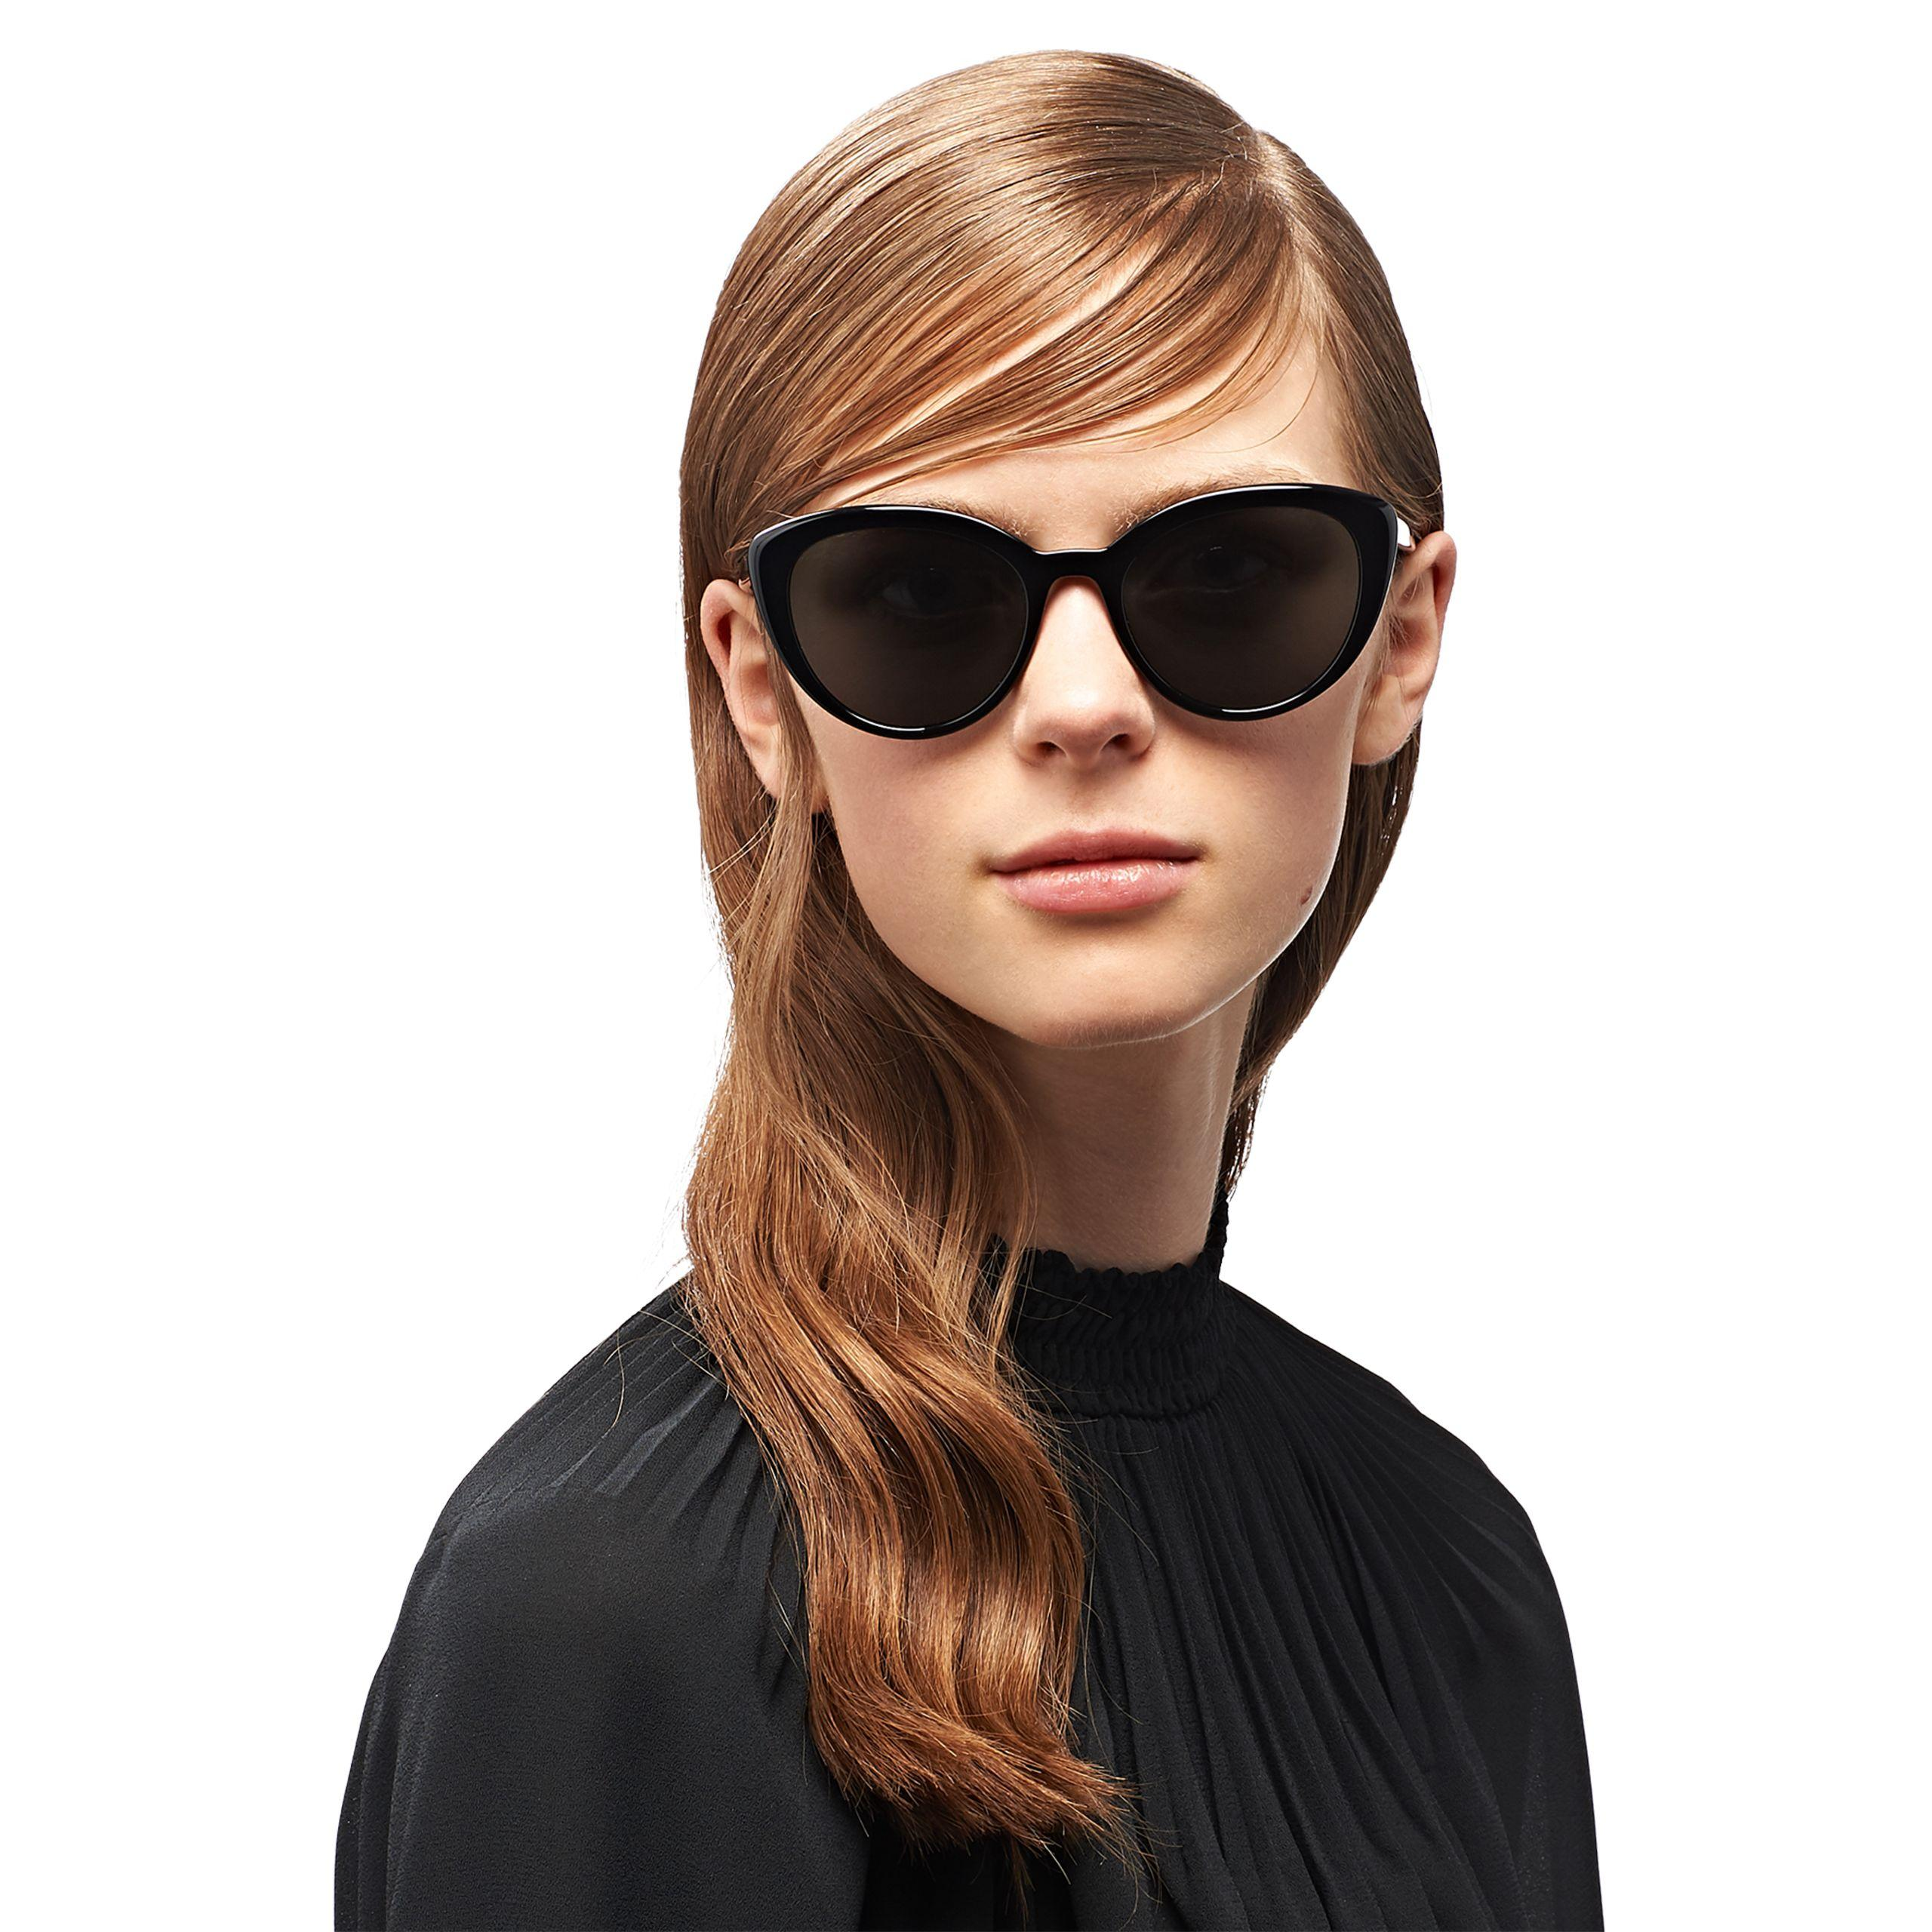 b4b83784bfc Prada - Black Ultravox Sunglasses - Lyst. View fullscreen